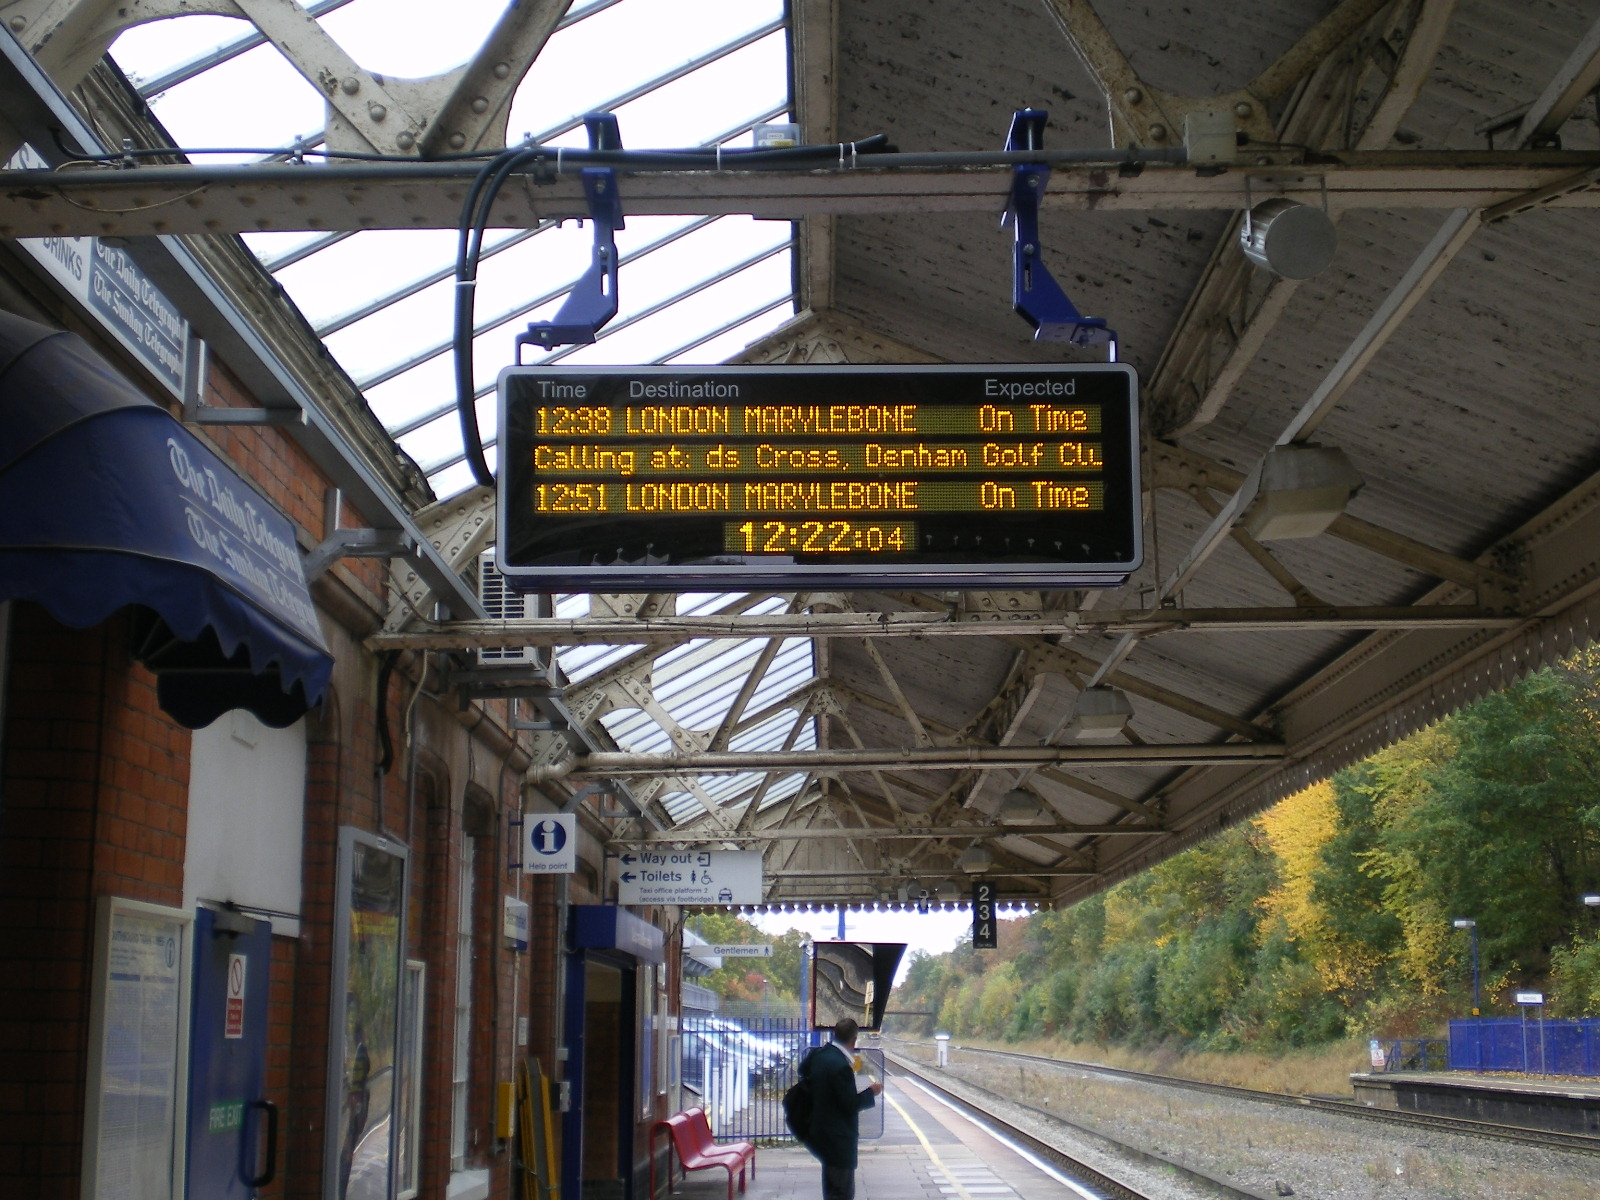 Chiltern Railways Amber LED Platform Display